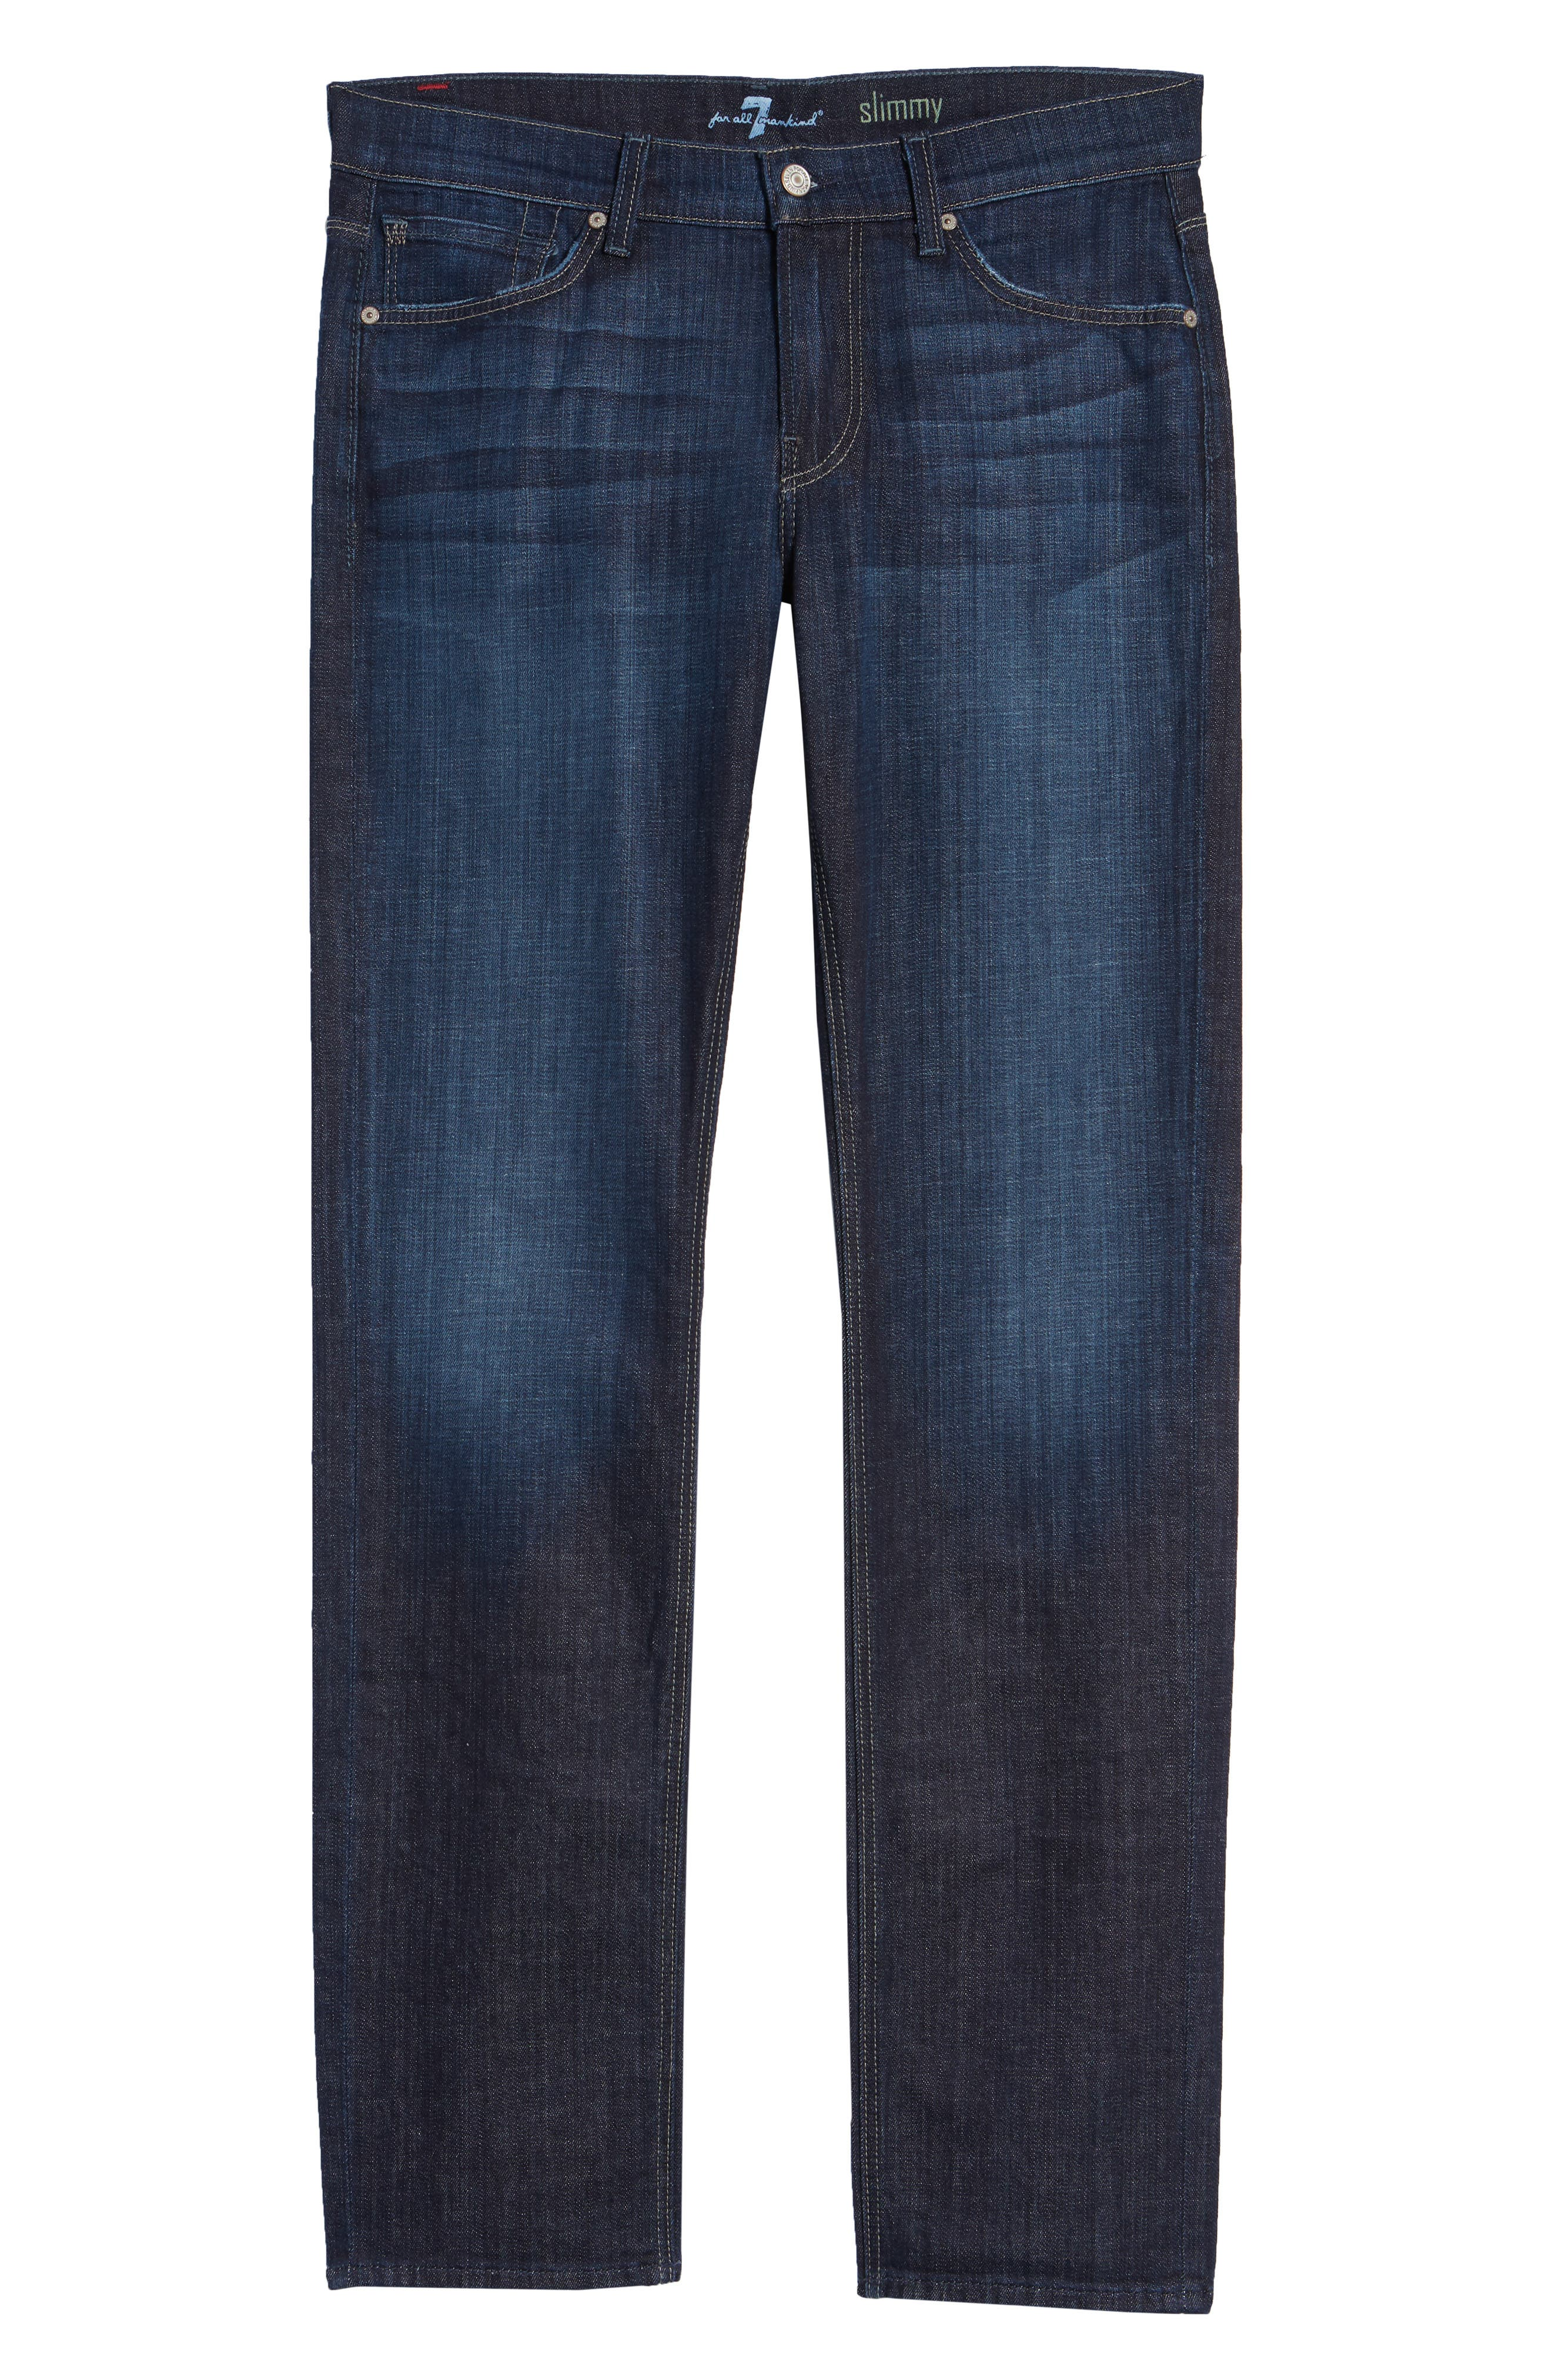 7 FOR ALL MANKIND<SUP>®</SUP>, Slimmy Slim Fit Jeans, Alternate thumbnail 2, color, LOS ANGELES DARK